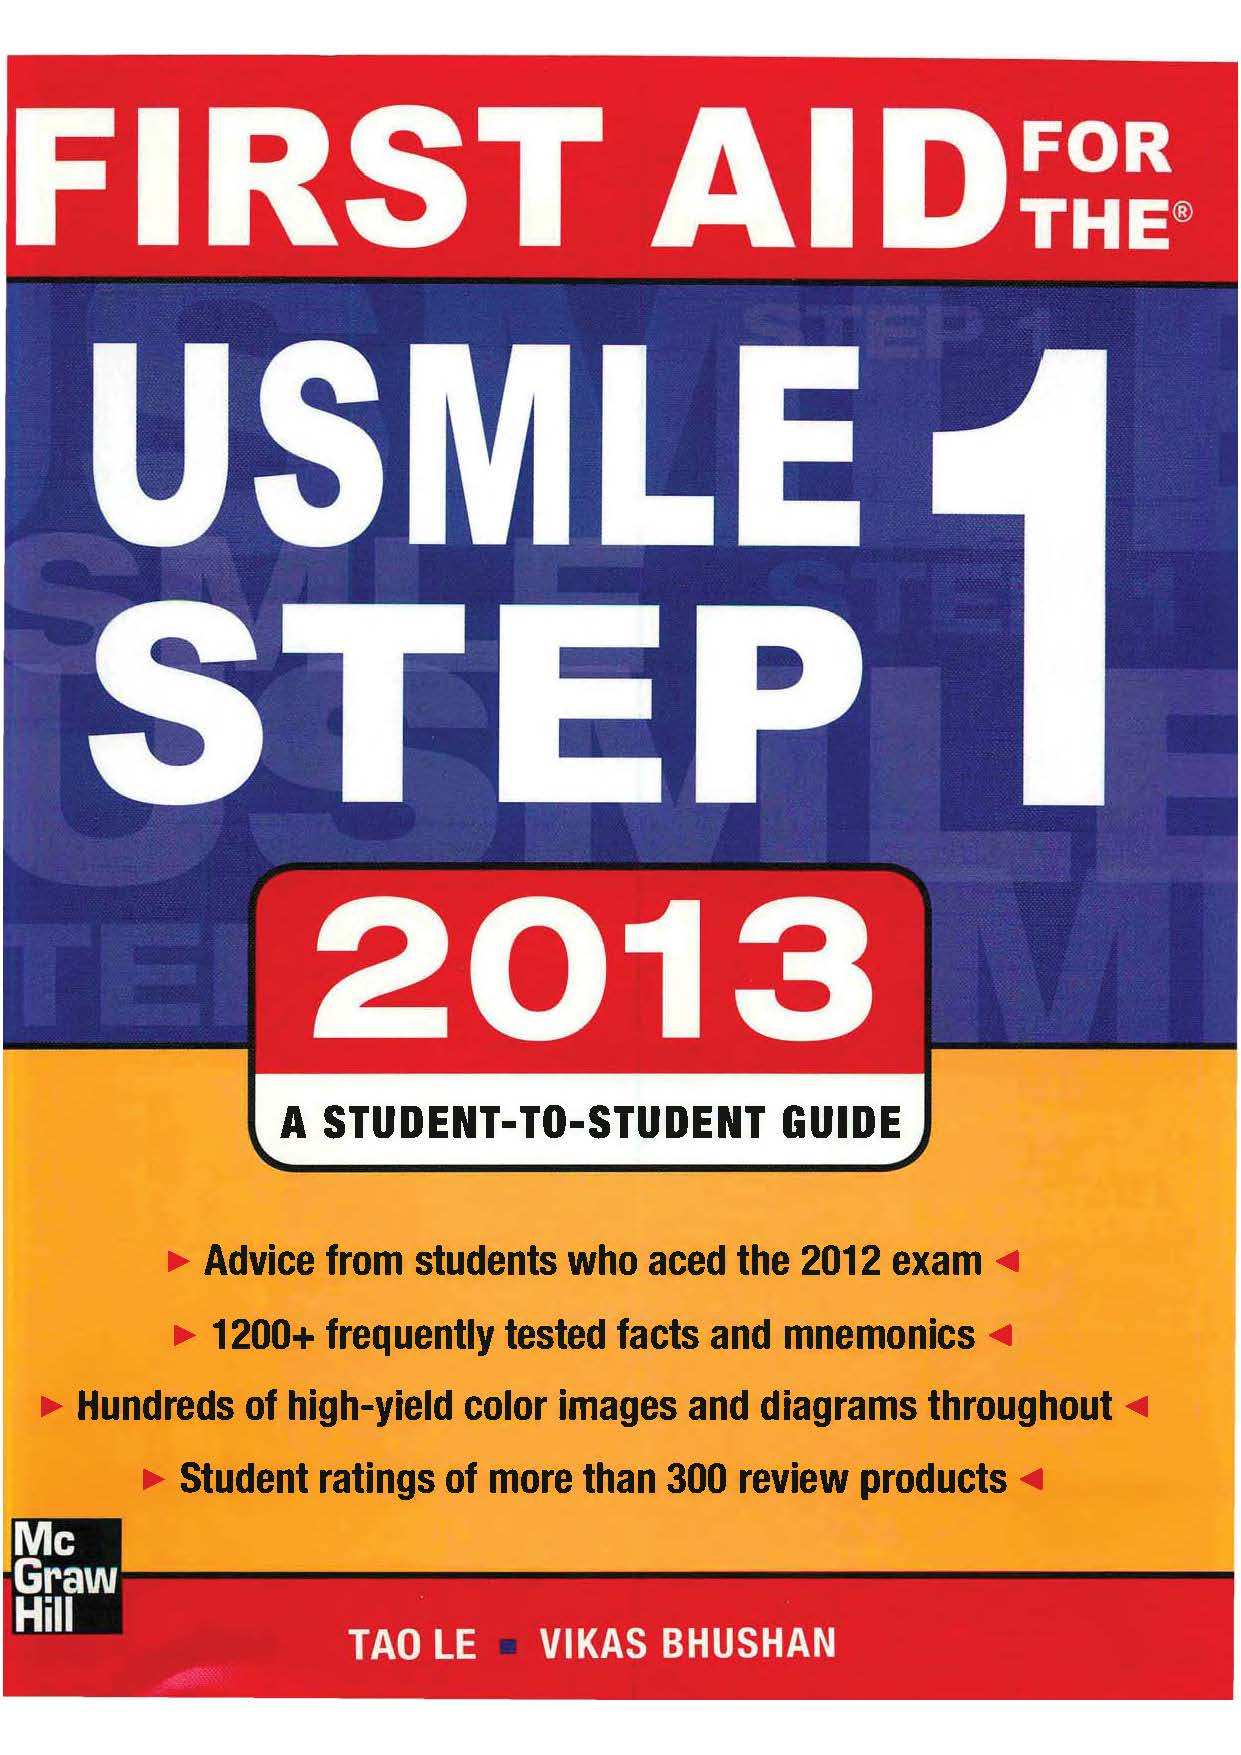 Usmle rx coupon code